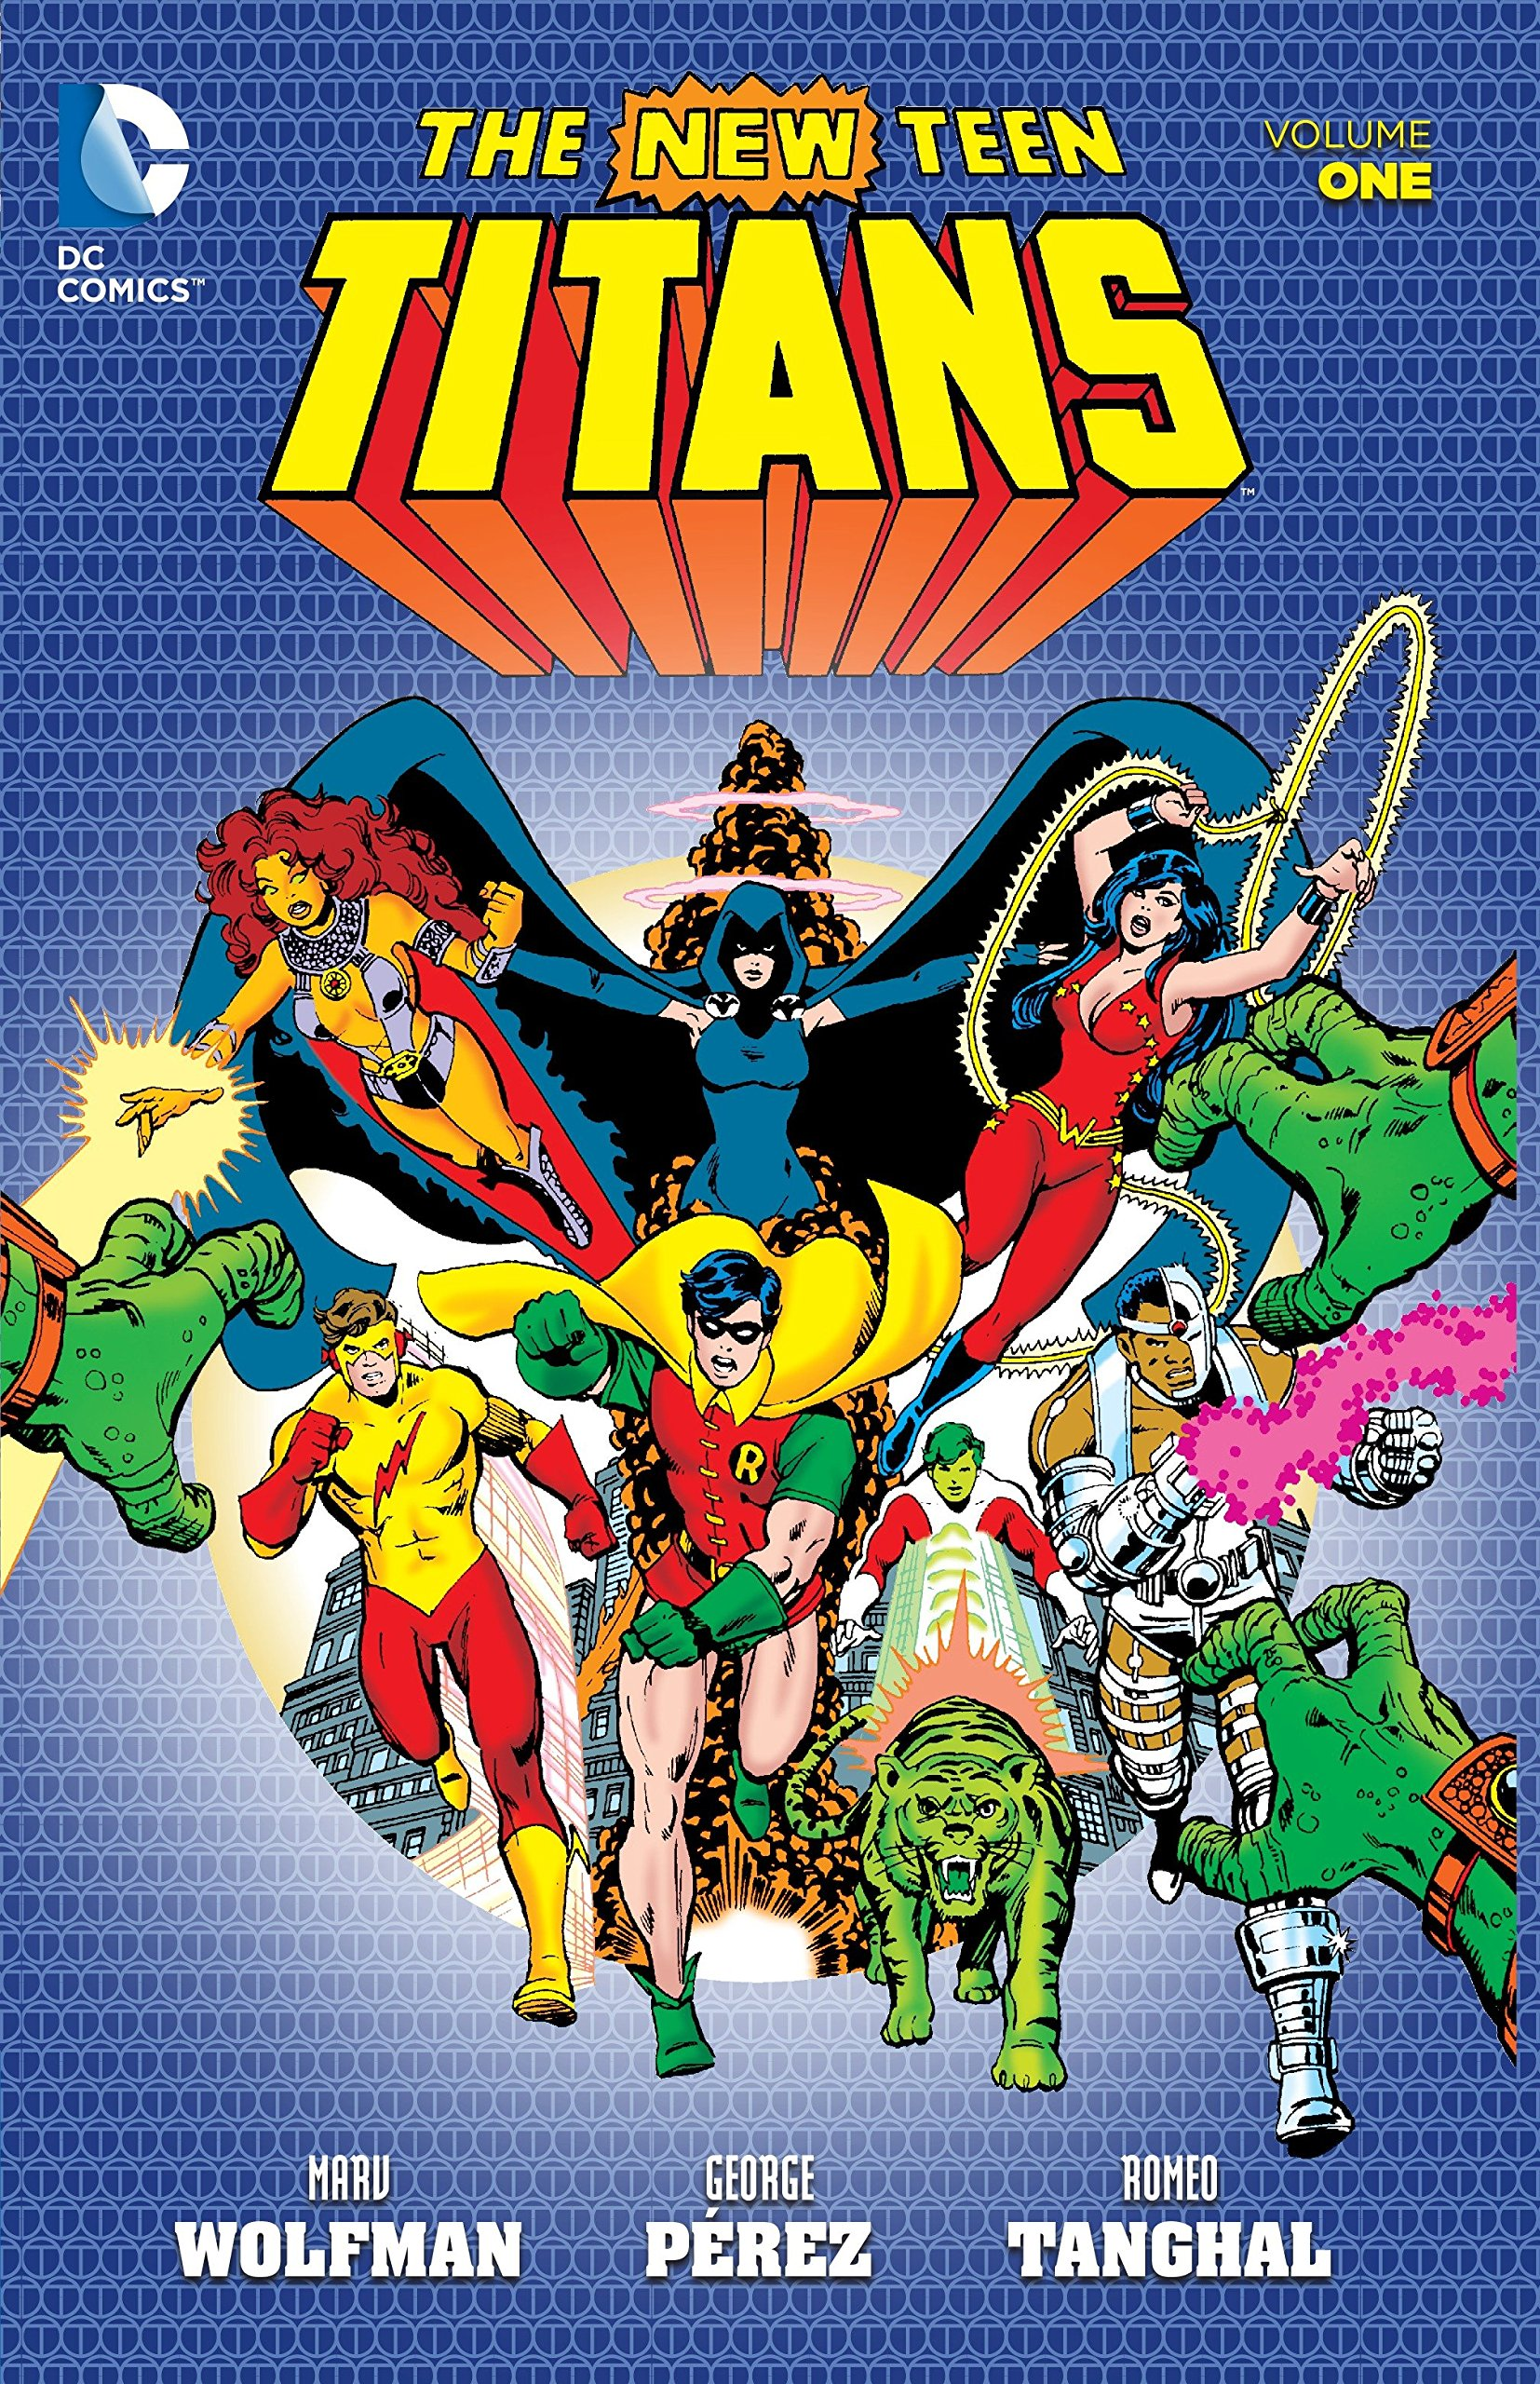 Read Online The New Teen Titans, Vol. 1 pdf epub